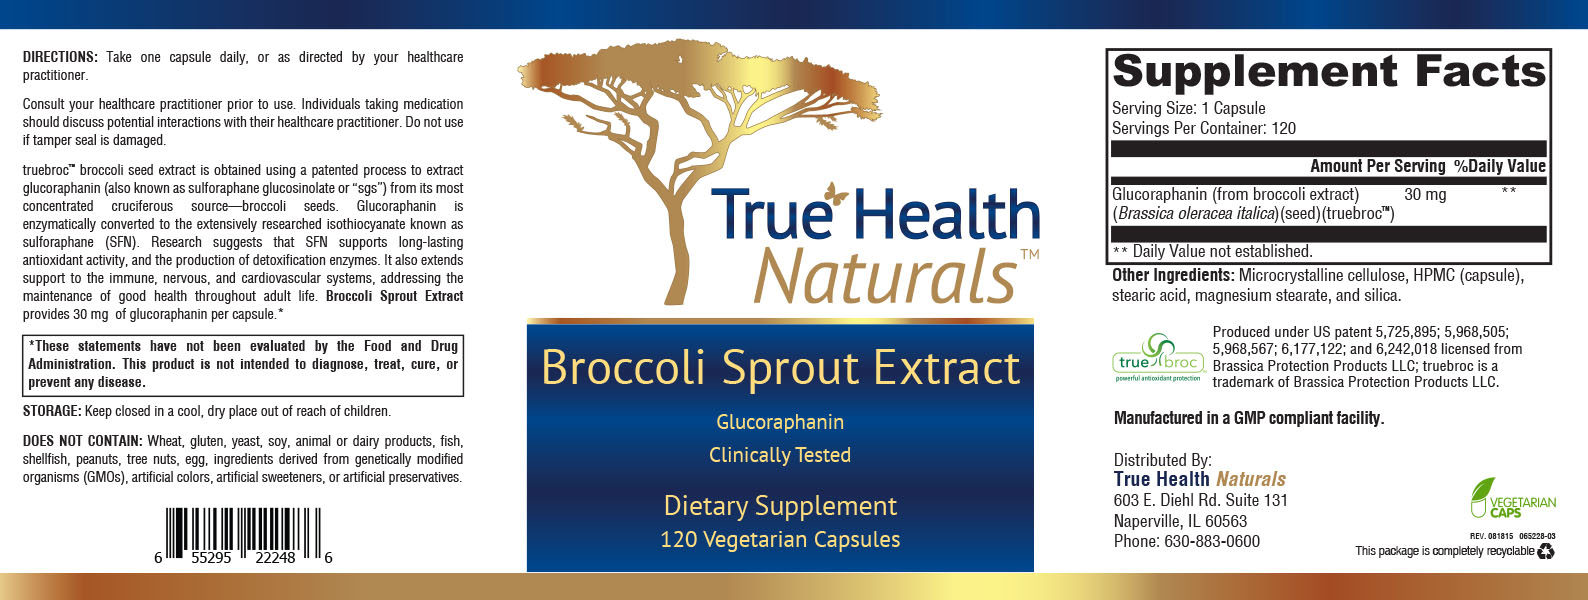 Broccoli Sprout Extract Label